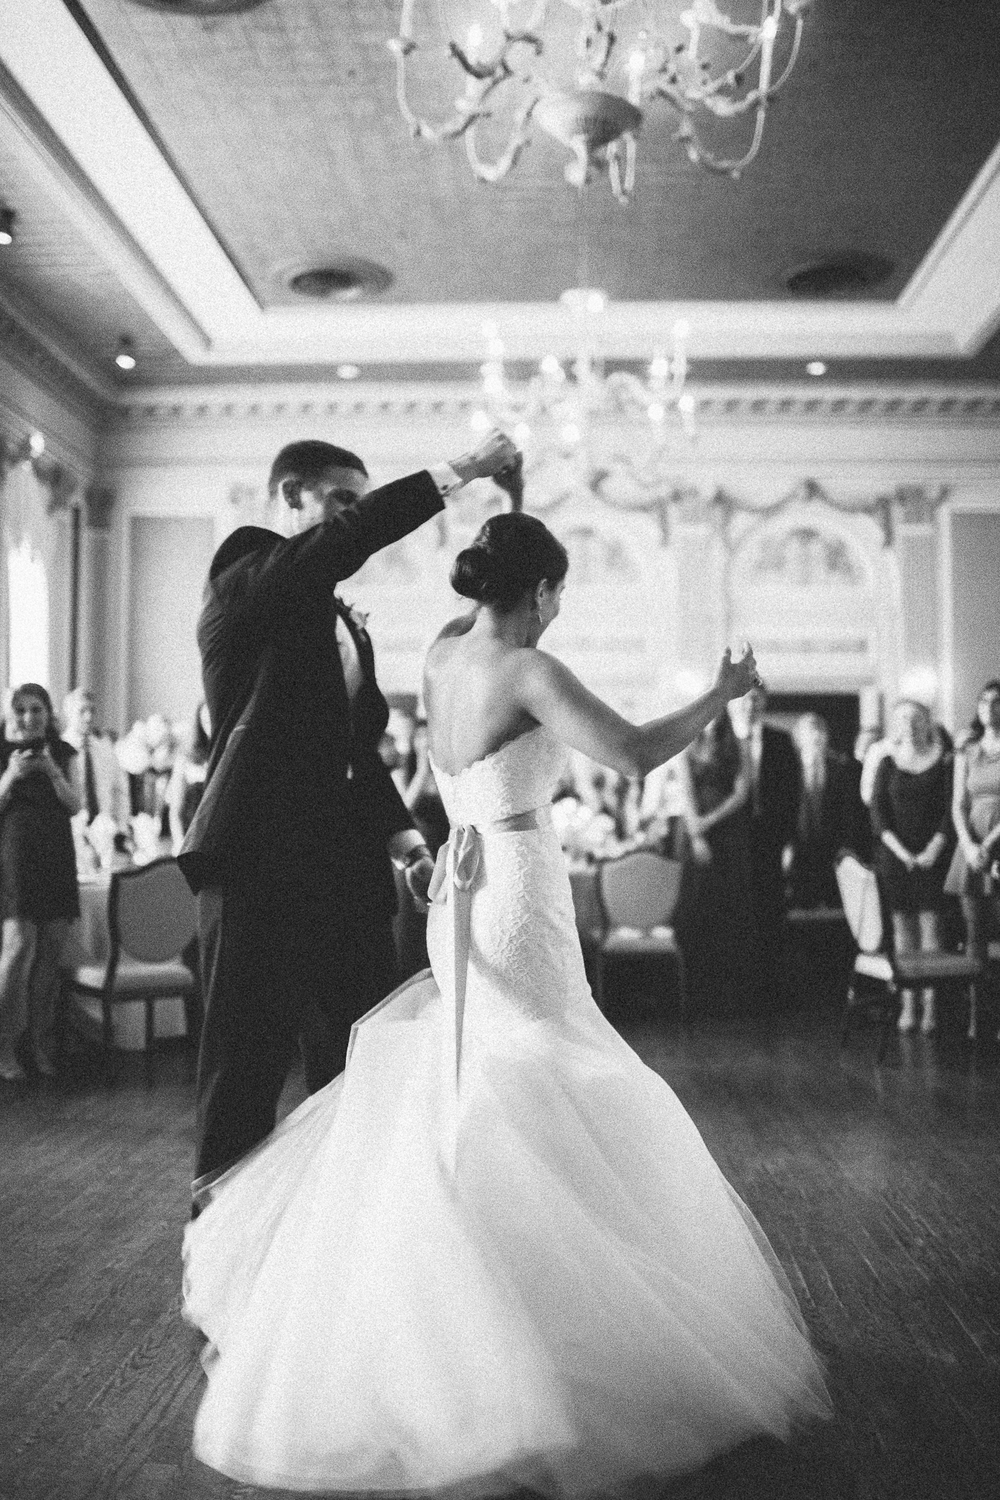 Sam_Stroud_Photography_Wedding_Photography_Richmond, Va.jpg